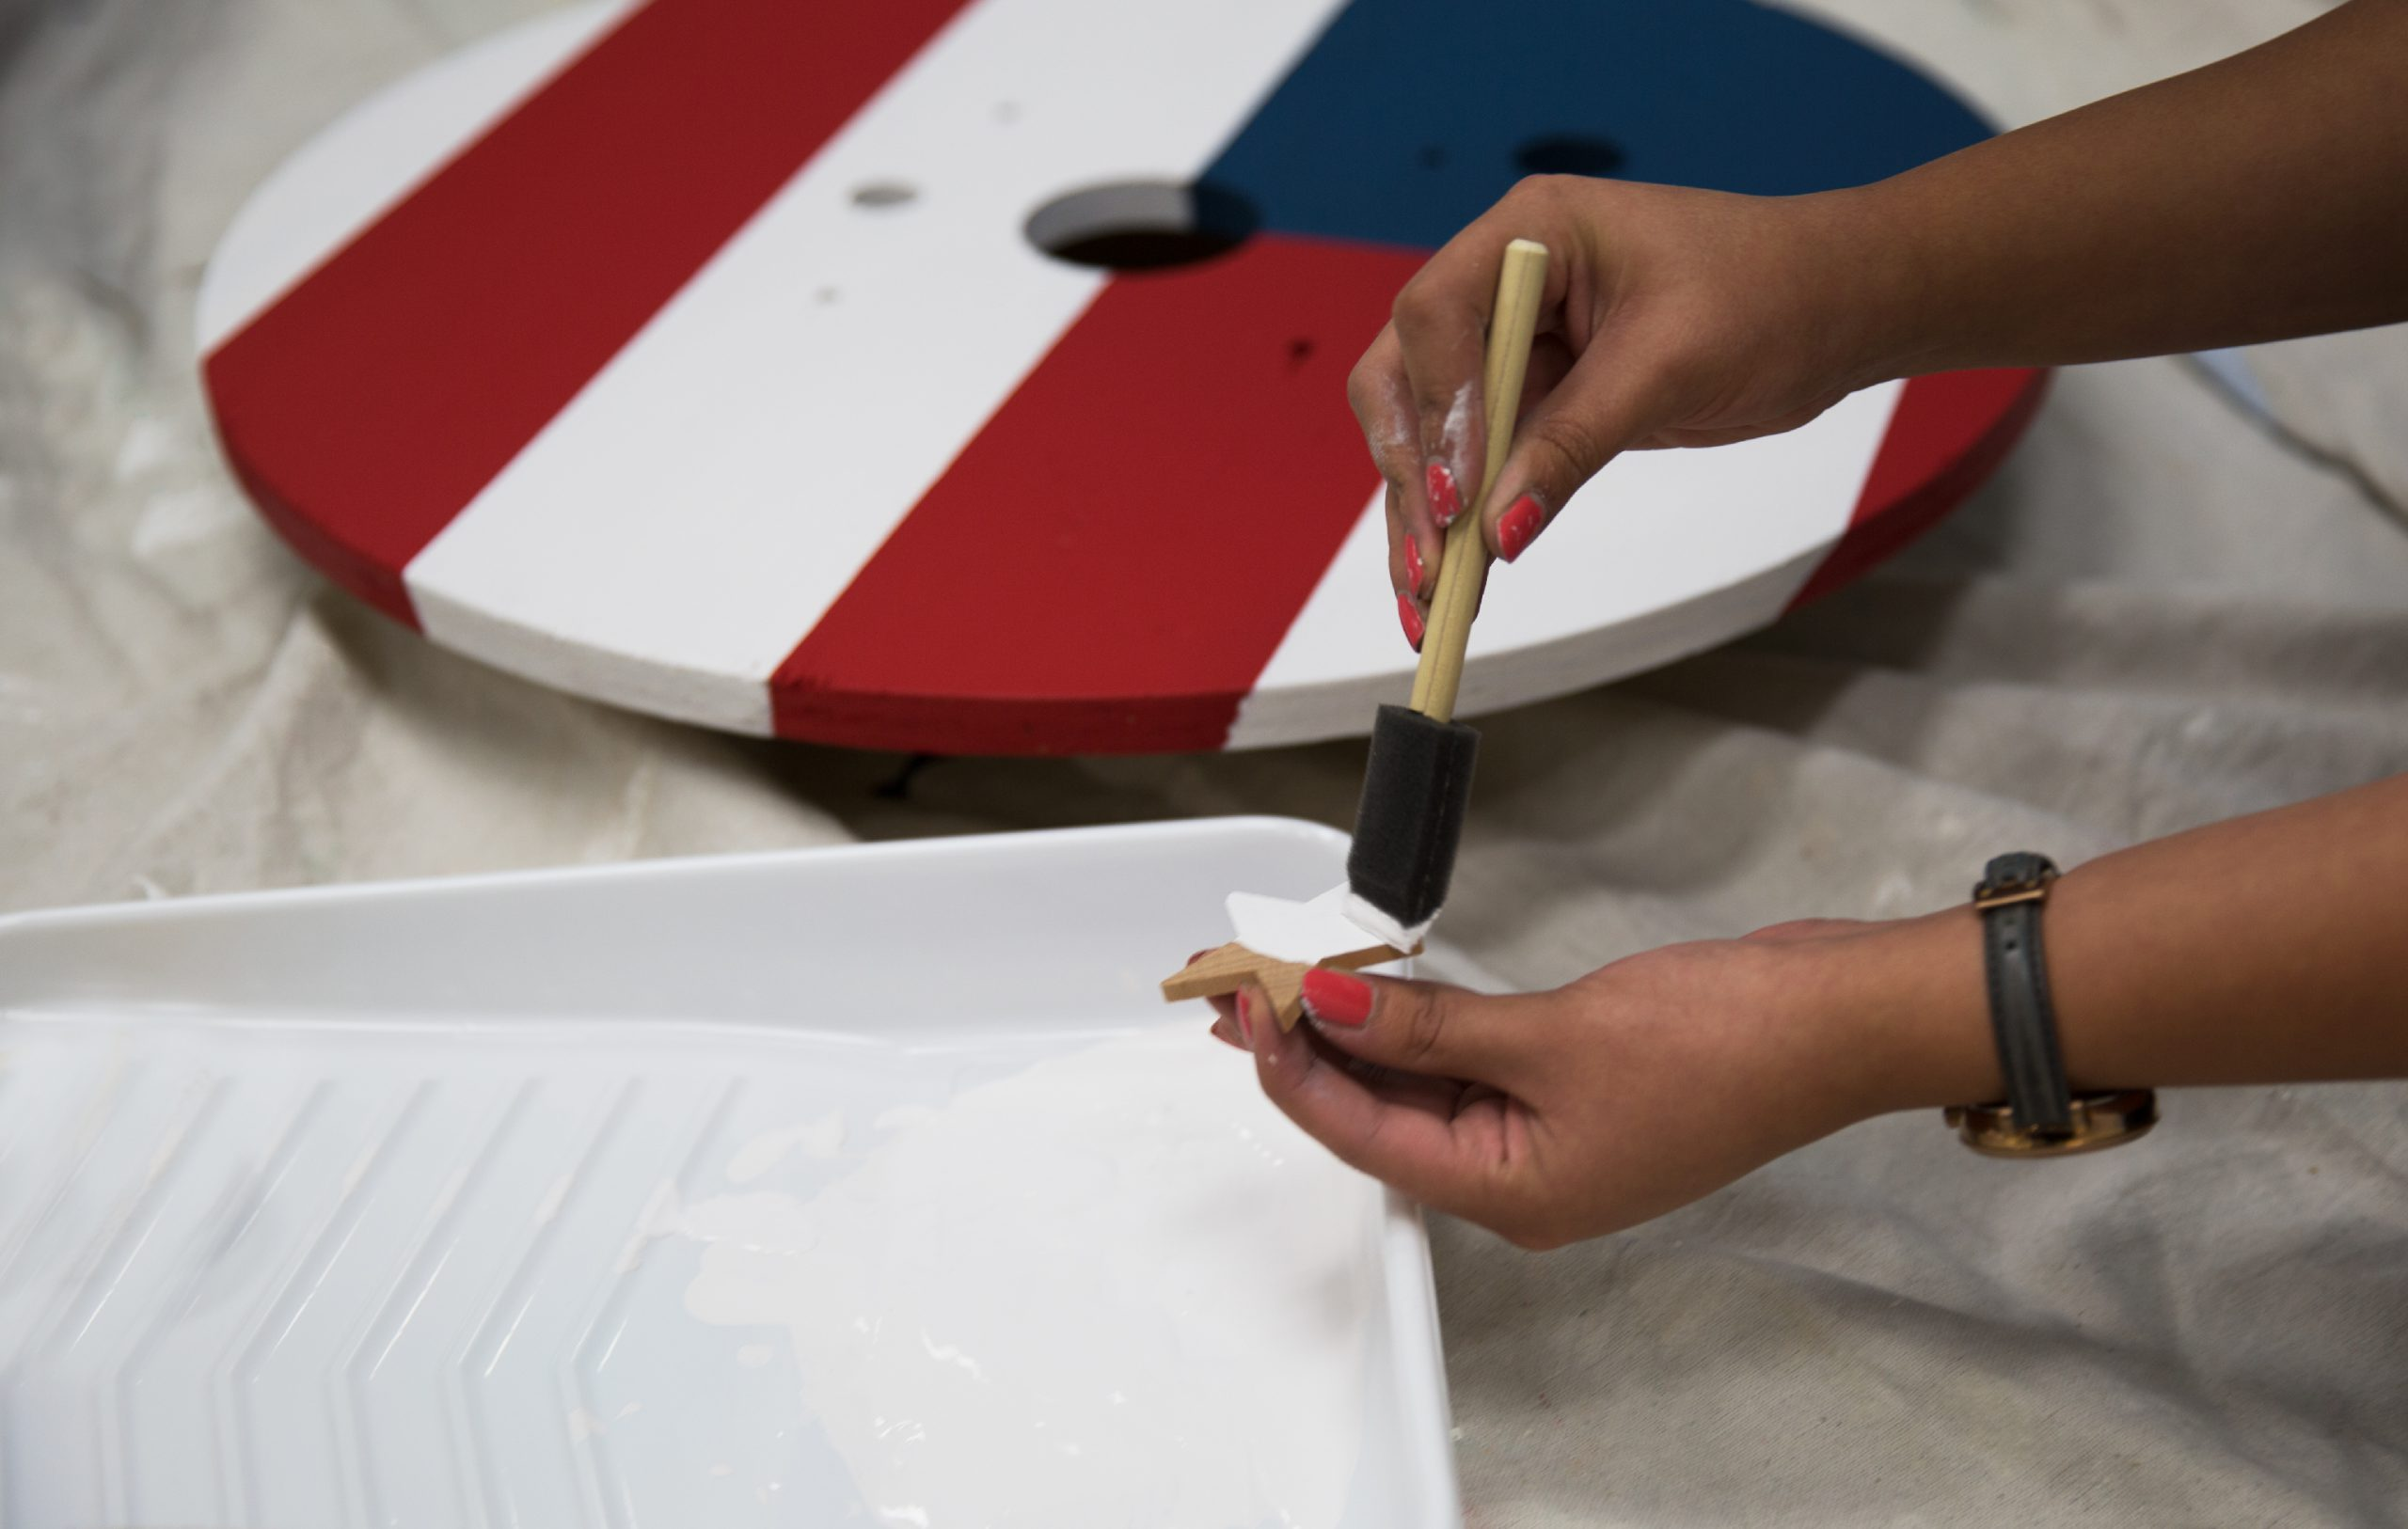 Painting stars onto a stamp stencil.